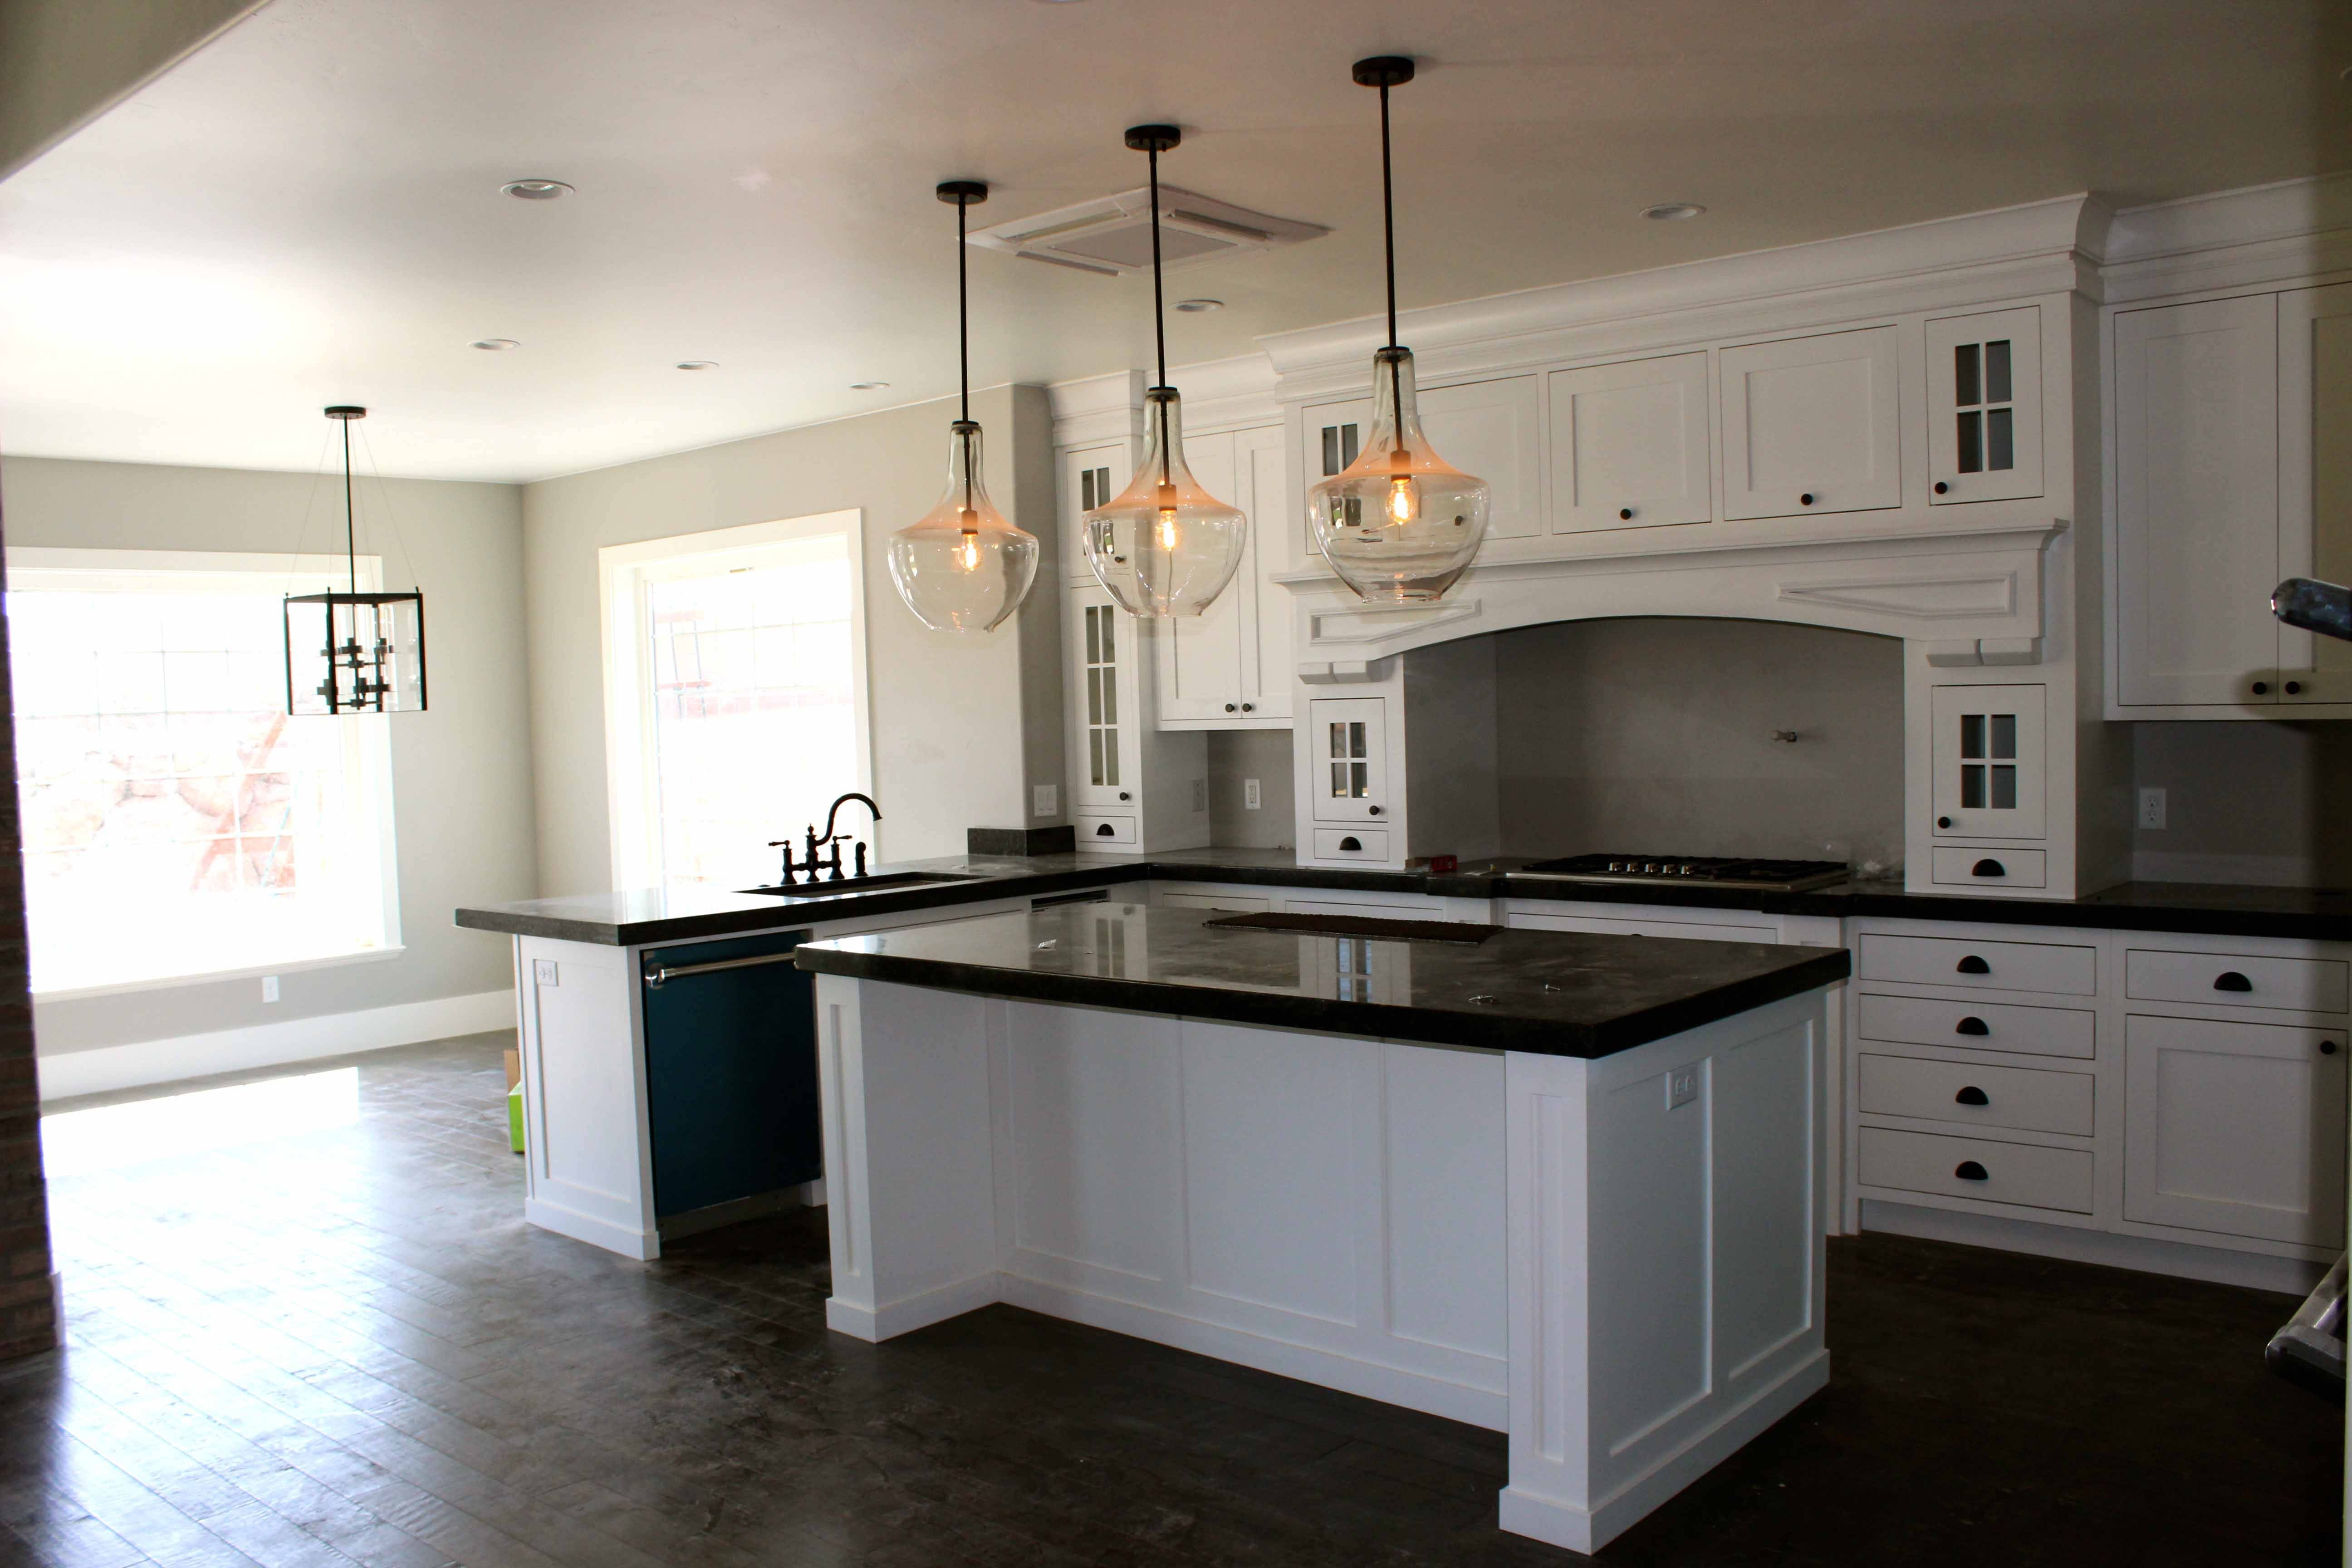 Glass Pendant Lights For Kitchen Island – Baby Exit Throughout Lighting Pendants For Kitchen Islands (View 11 of 15)